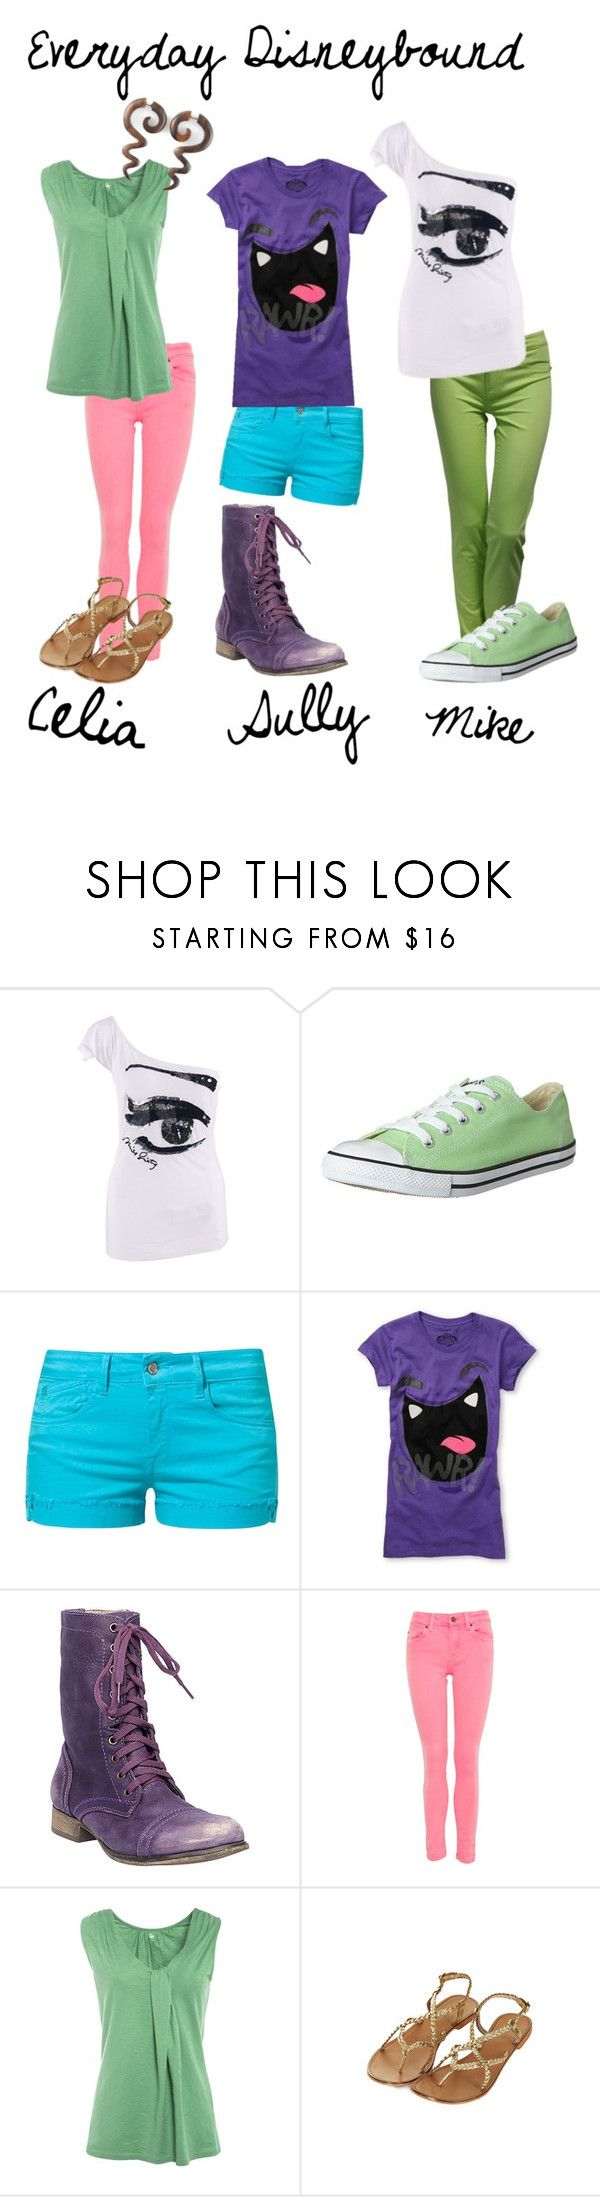 """""""Monsters Inc Summer"""" by totallytrue ❤ liked on Polyvore featuring Jane Norman, Miss Sixty, Converse, Le Temps Des Cerises, Steve Madden, A Wear, Kin by John Lewis, Topshop and monsters inc summer disneybound disney pixar mike celia sully"""